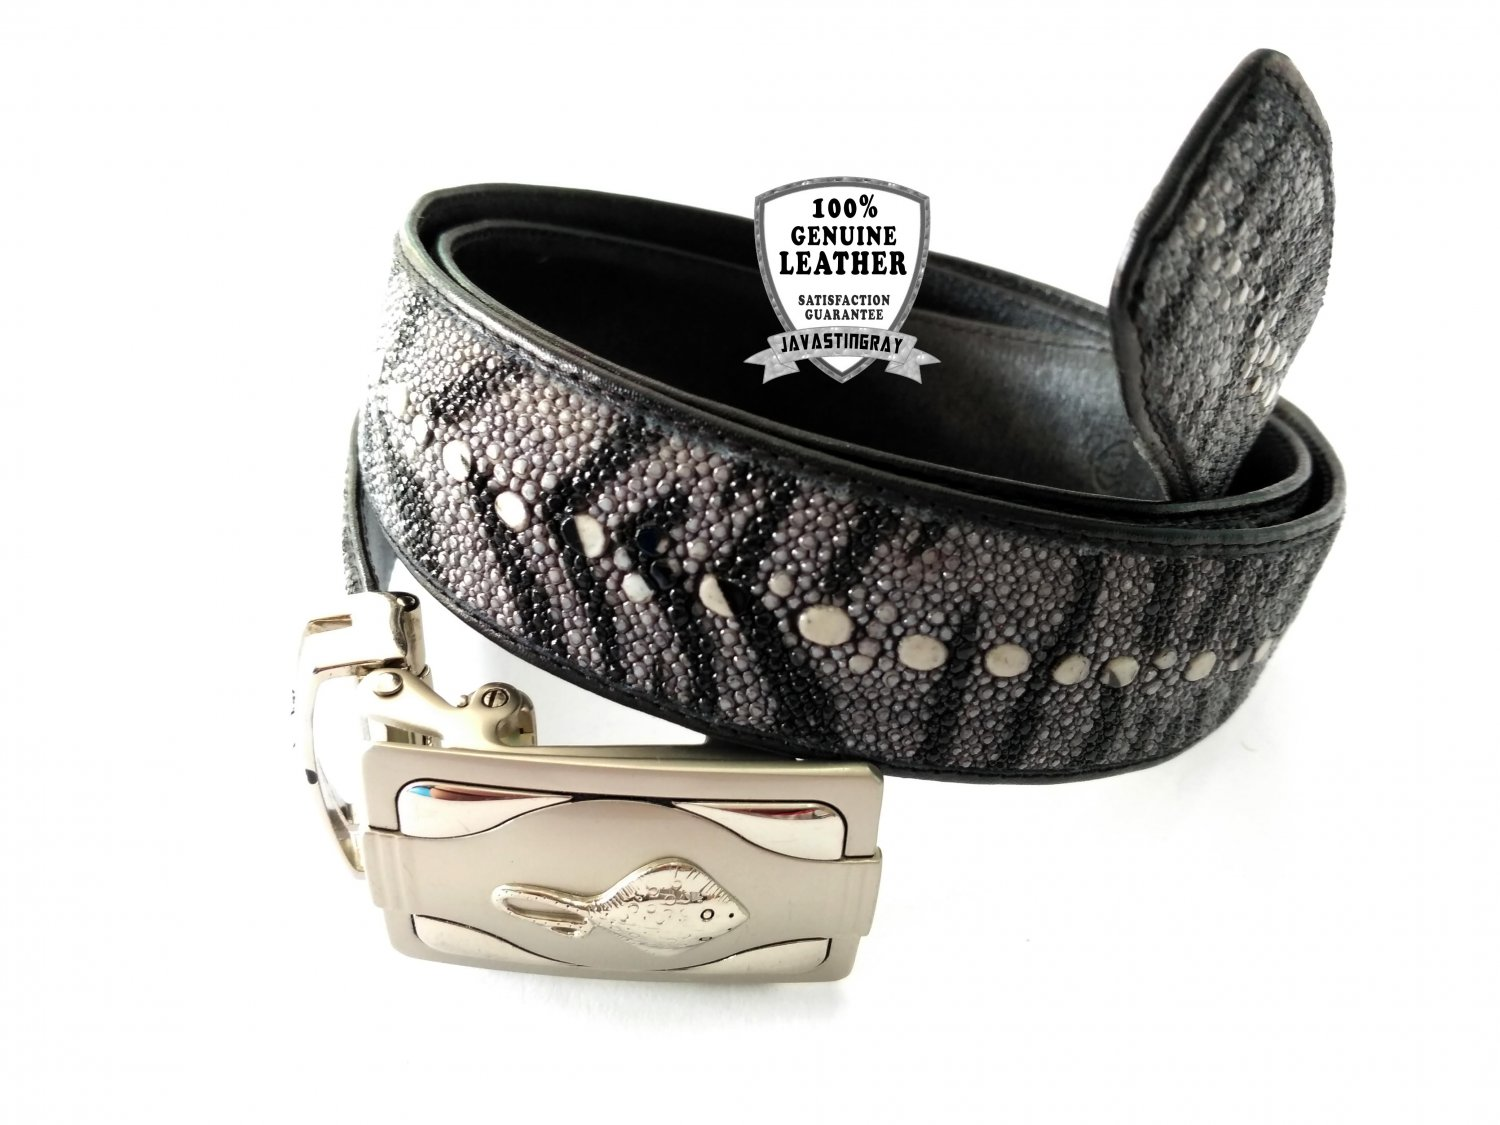 Real Leather Belt Stingray Leather Automatic Belt Buckle Black Color Tiger Stripe Pattern